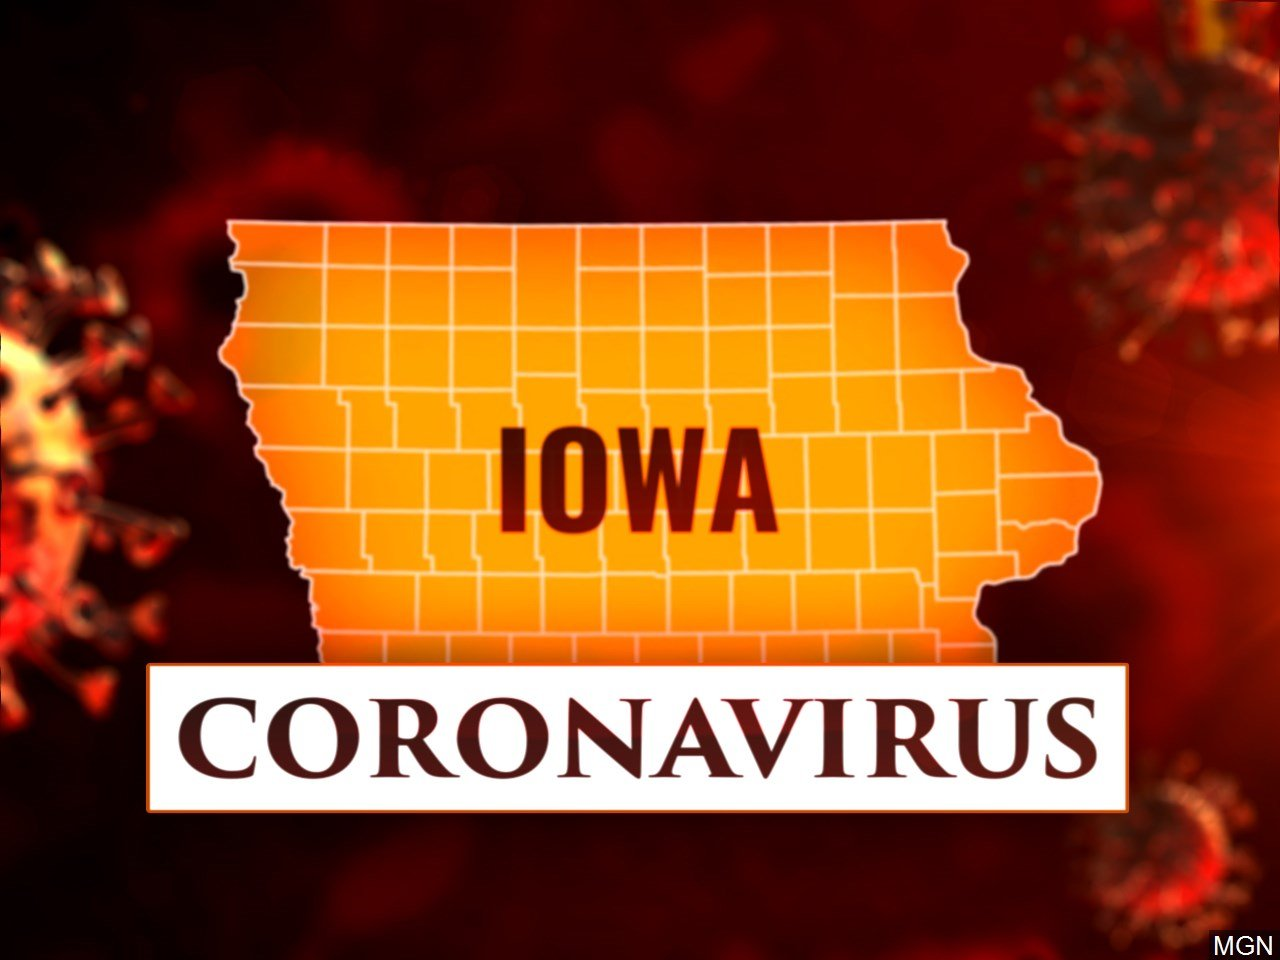 21 More COVID-19 Deaths, 595 New Cases Reported in Iowa 3